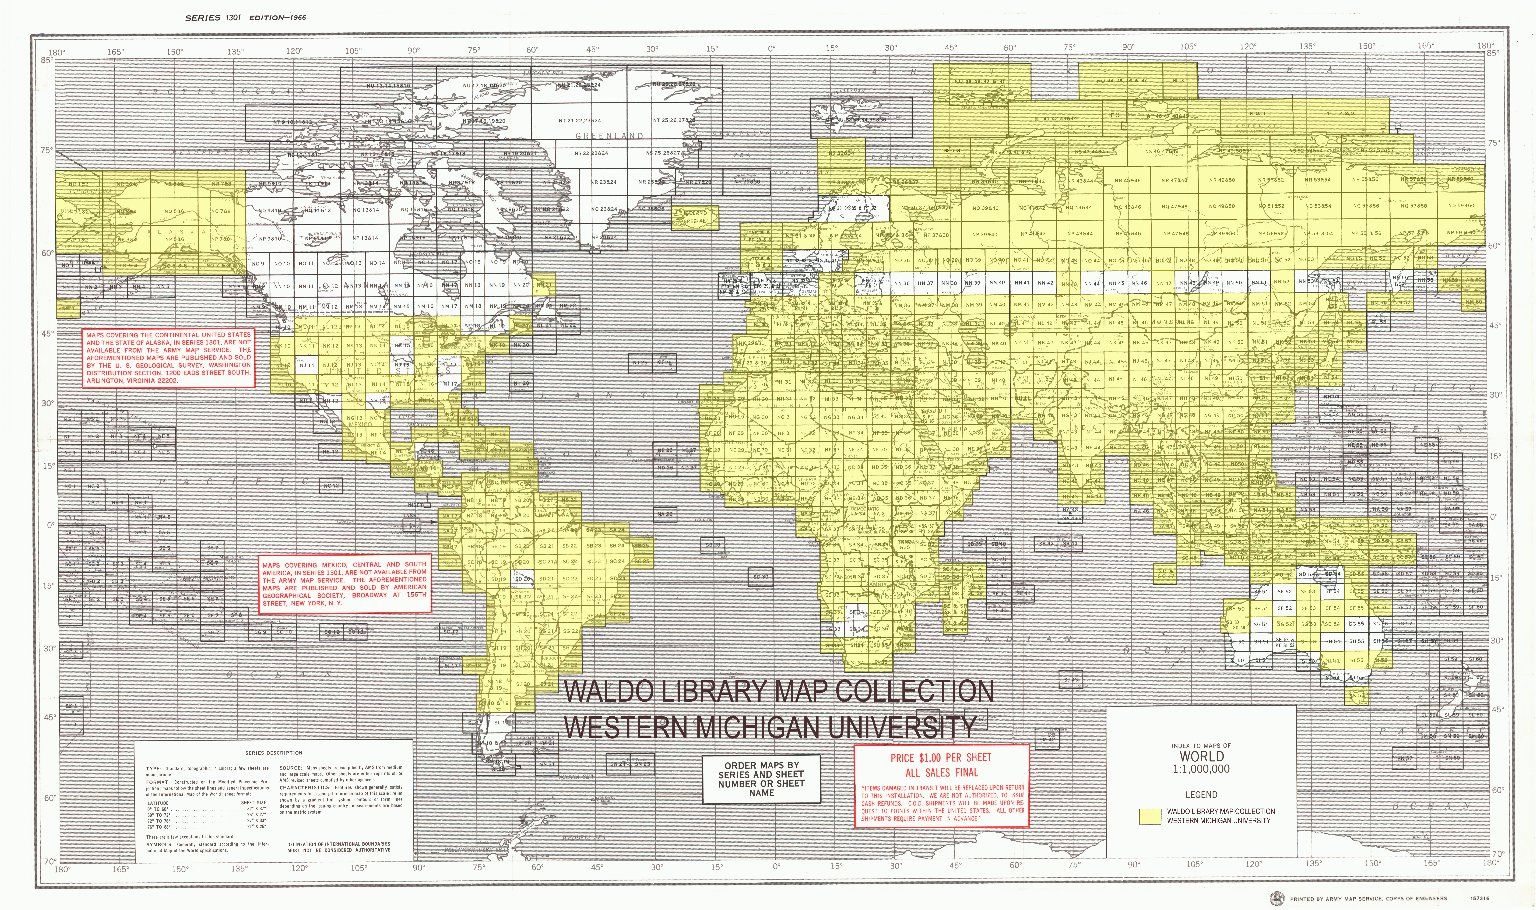 Index to maps of world 1:1,000,000